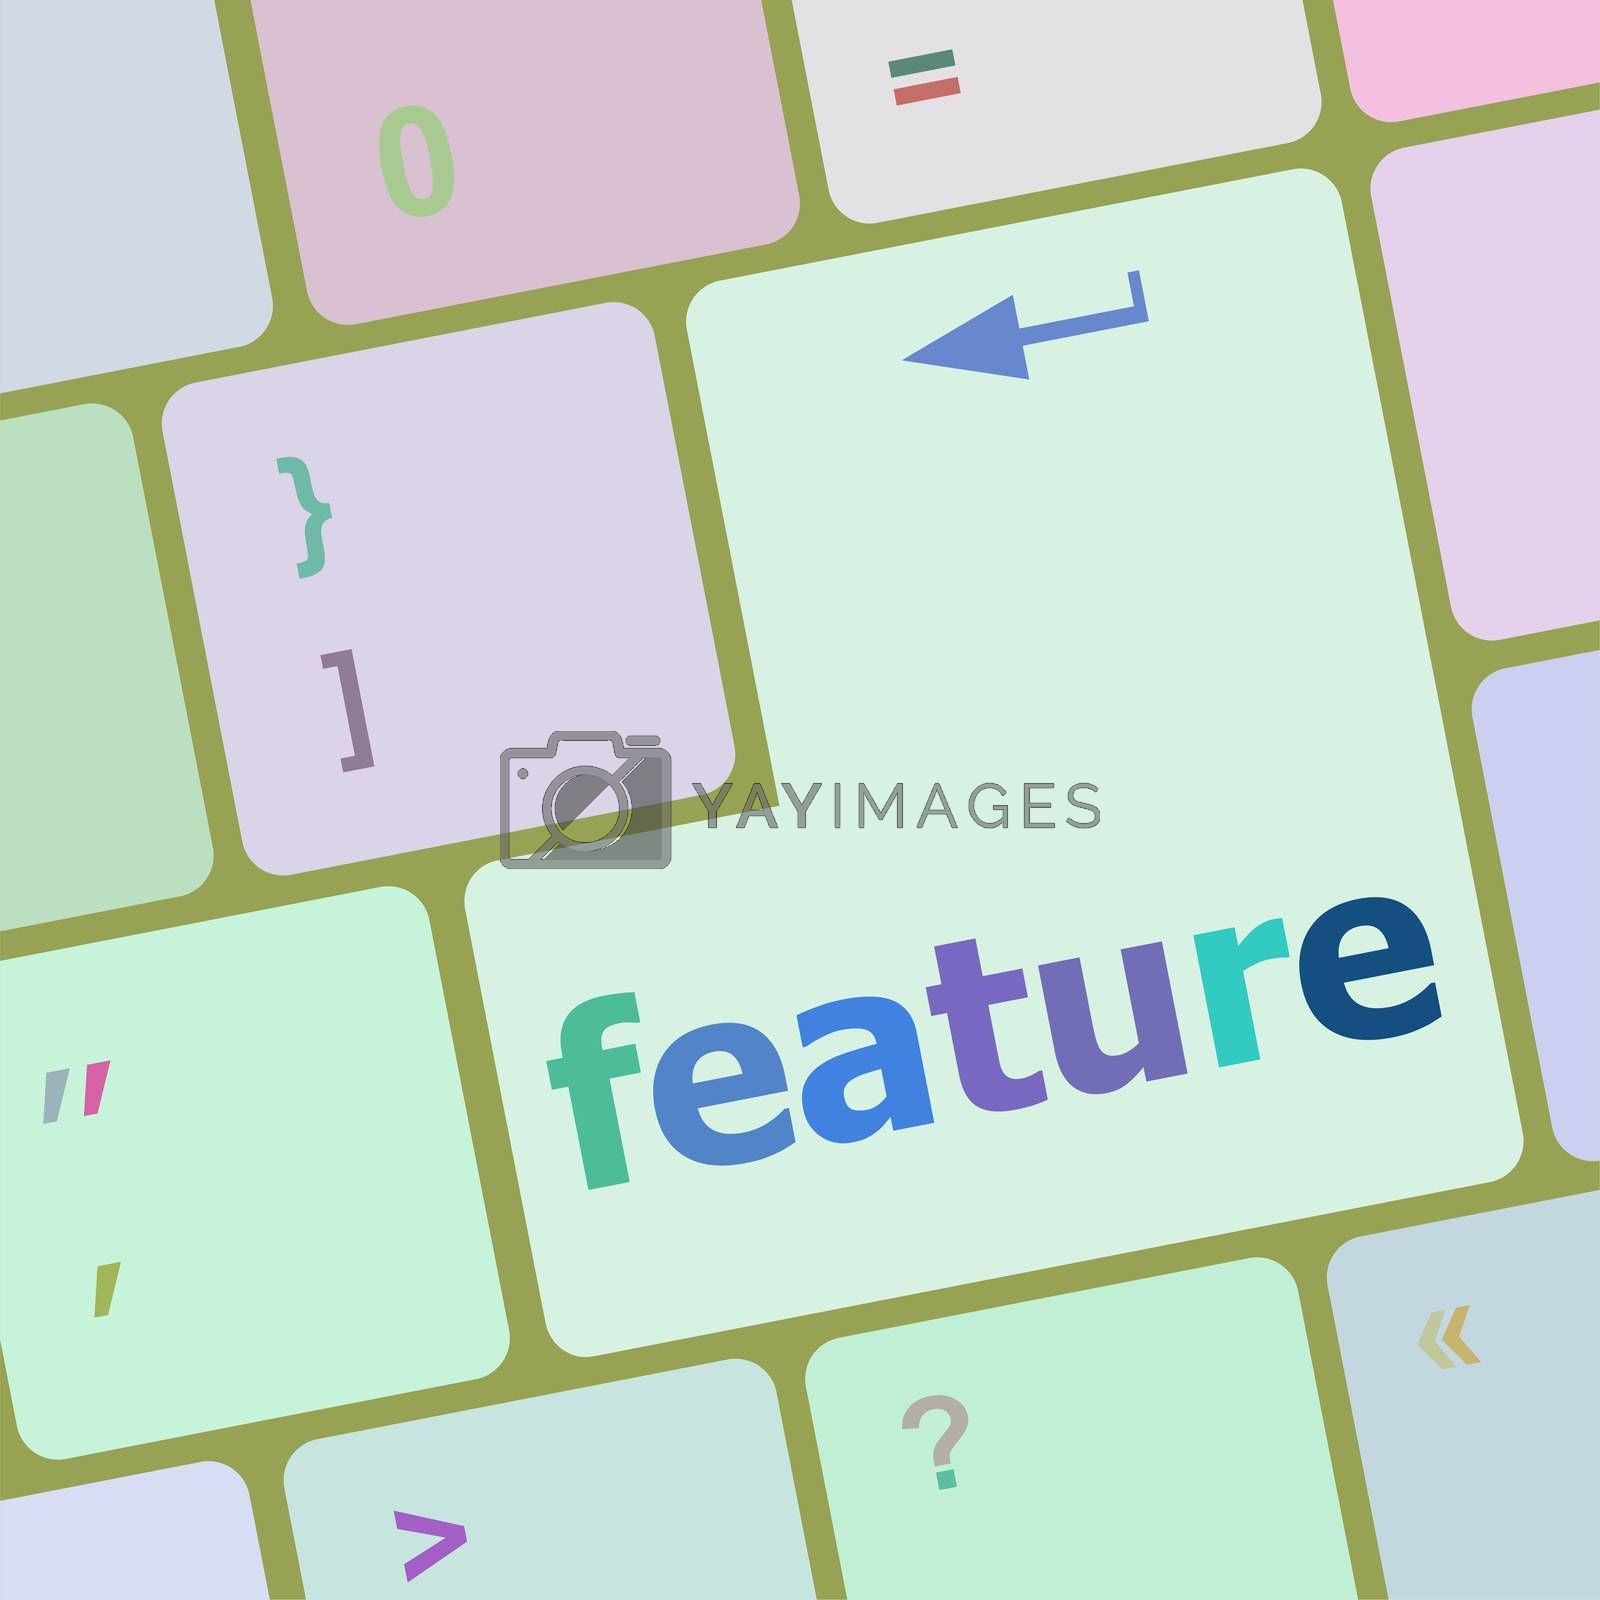 feature word on keyboard key, notebook computer button